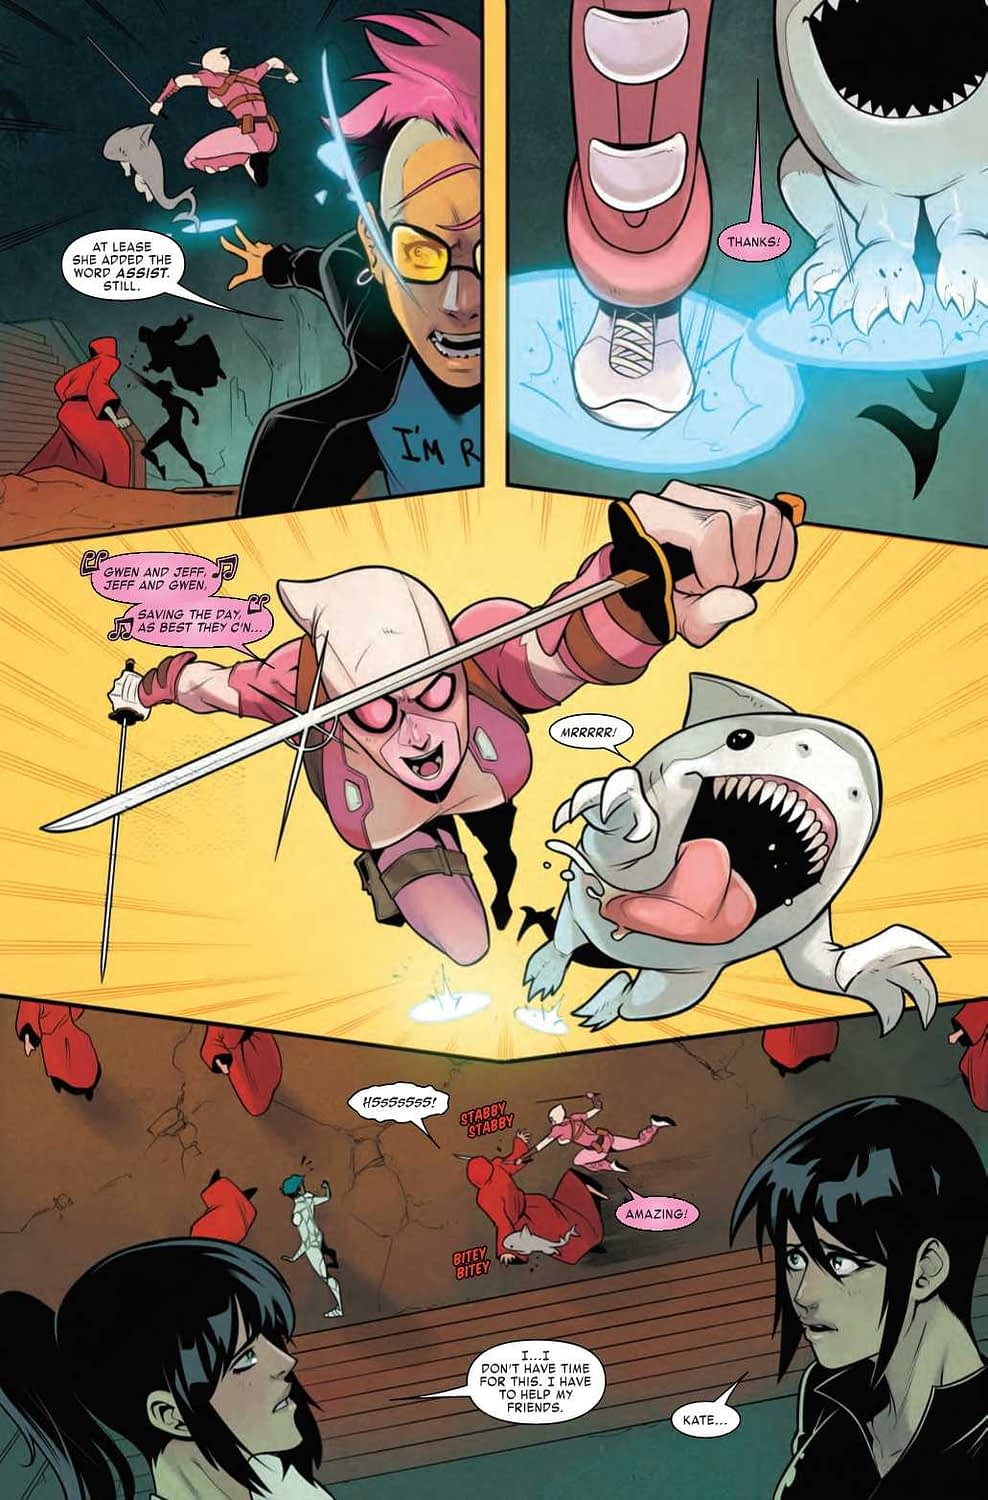 Why You Should Never Trust a Half-Vampire, Even if She's Your Mom - West Coast Avengers #10 Preview